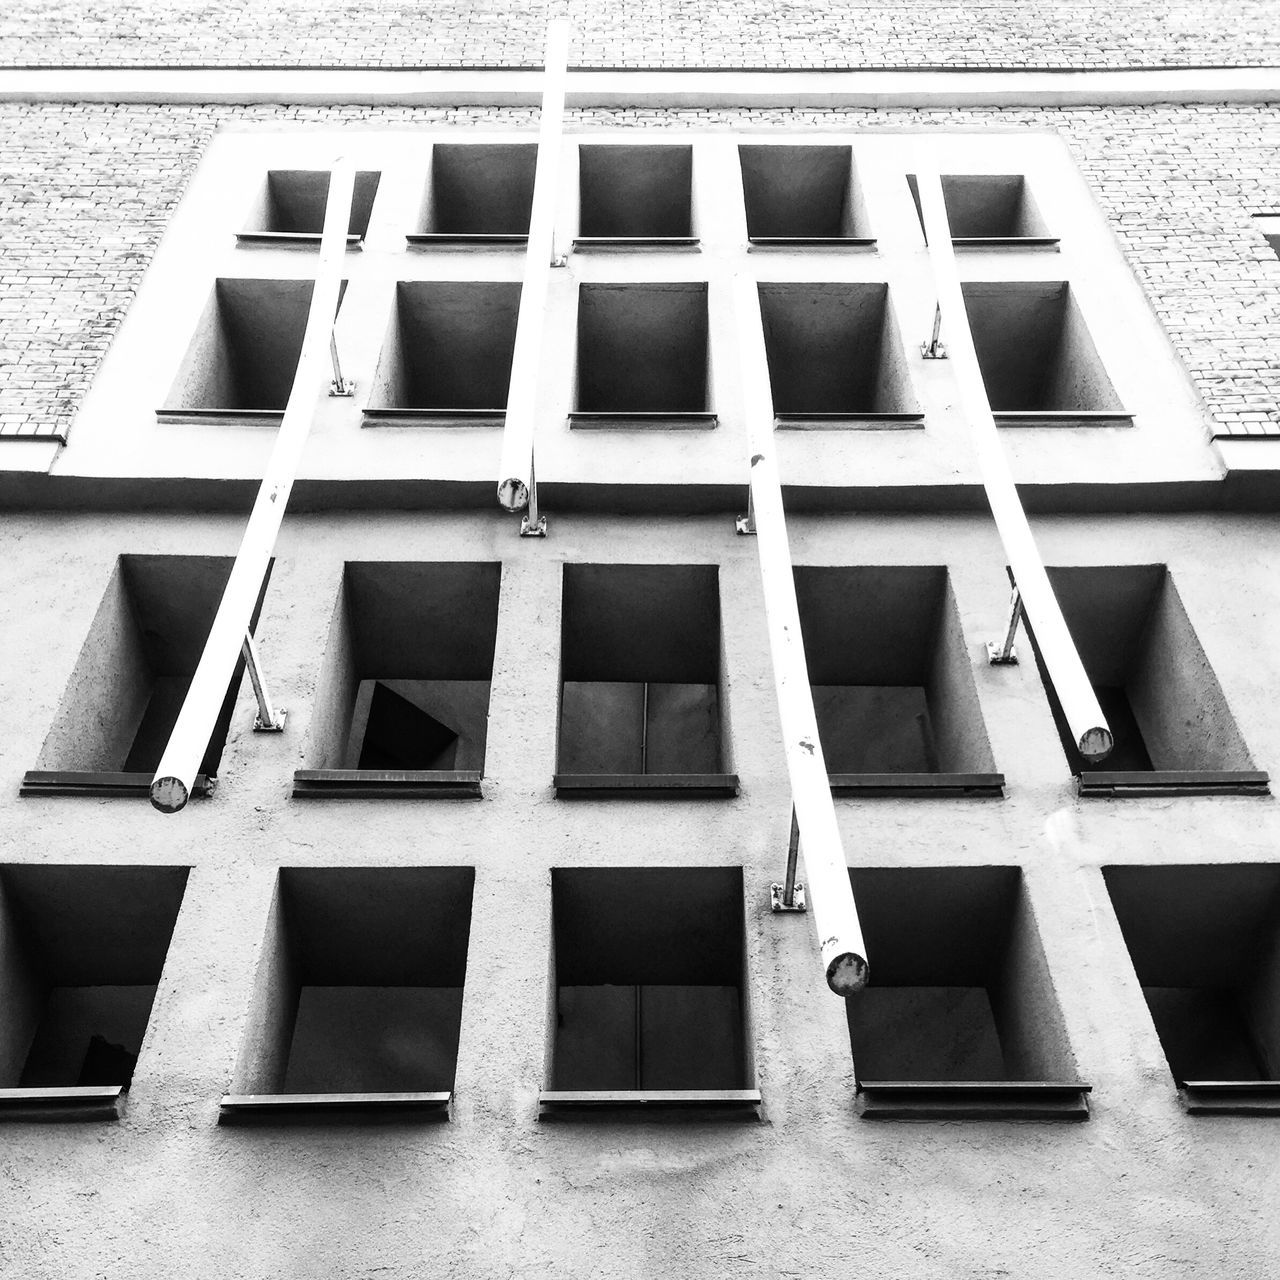 window, architecture, no people, day, outdoors, building exterior, built structure